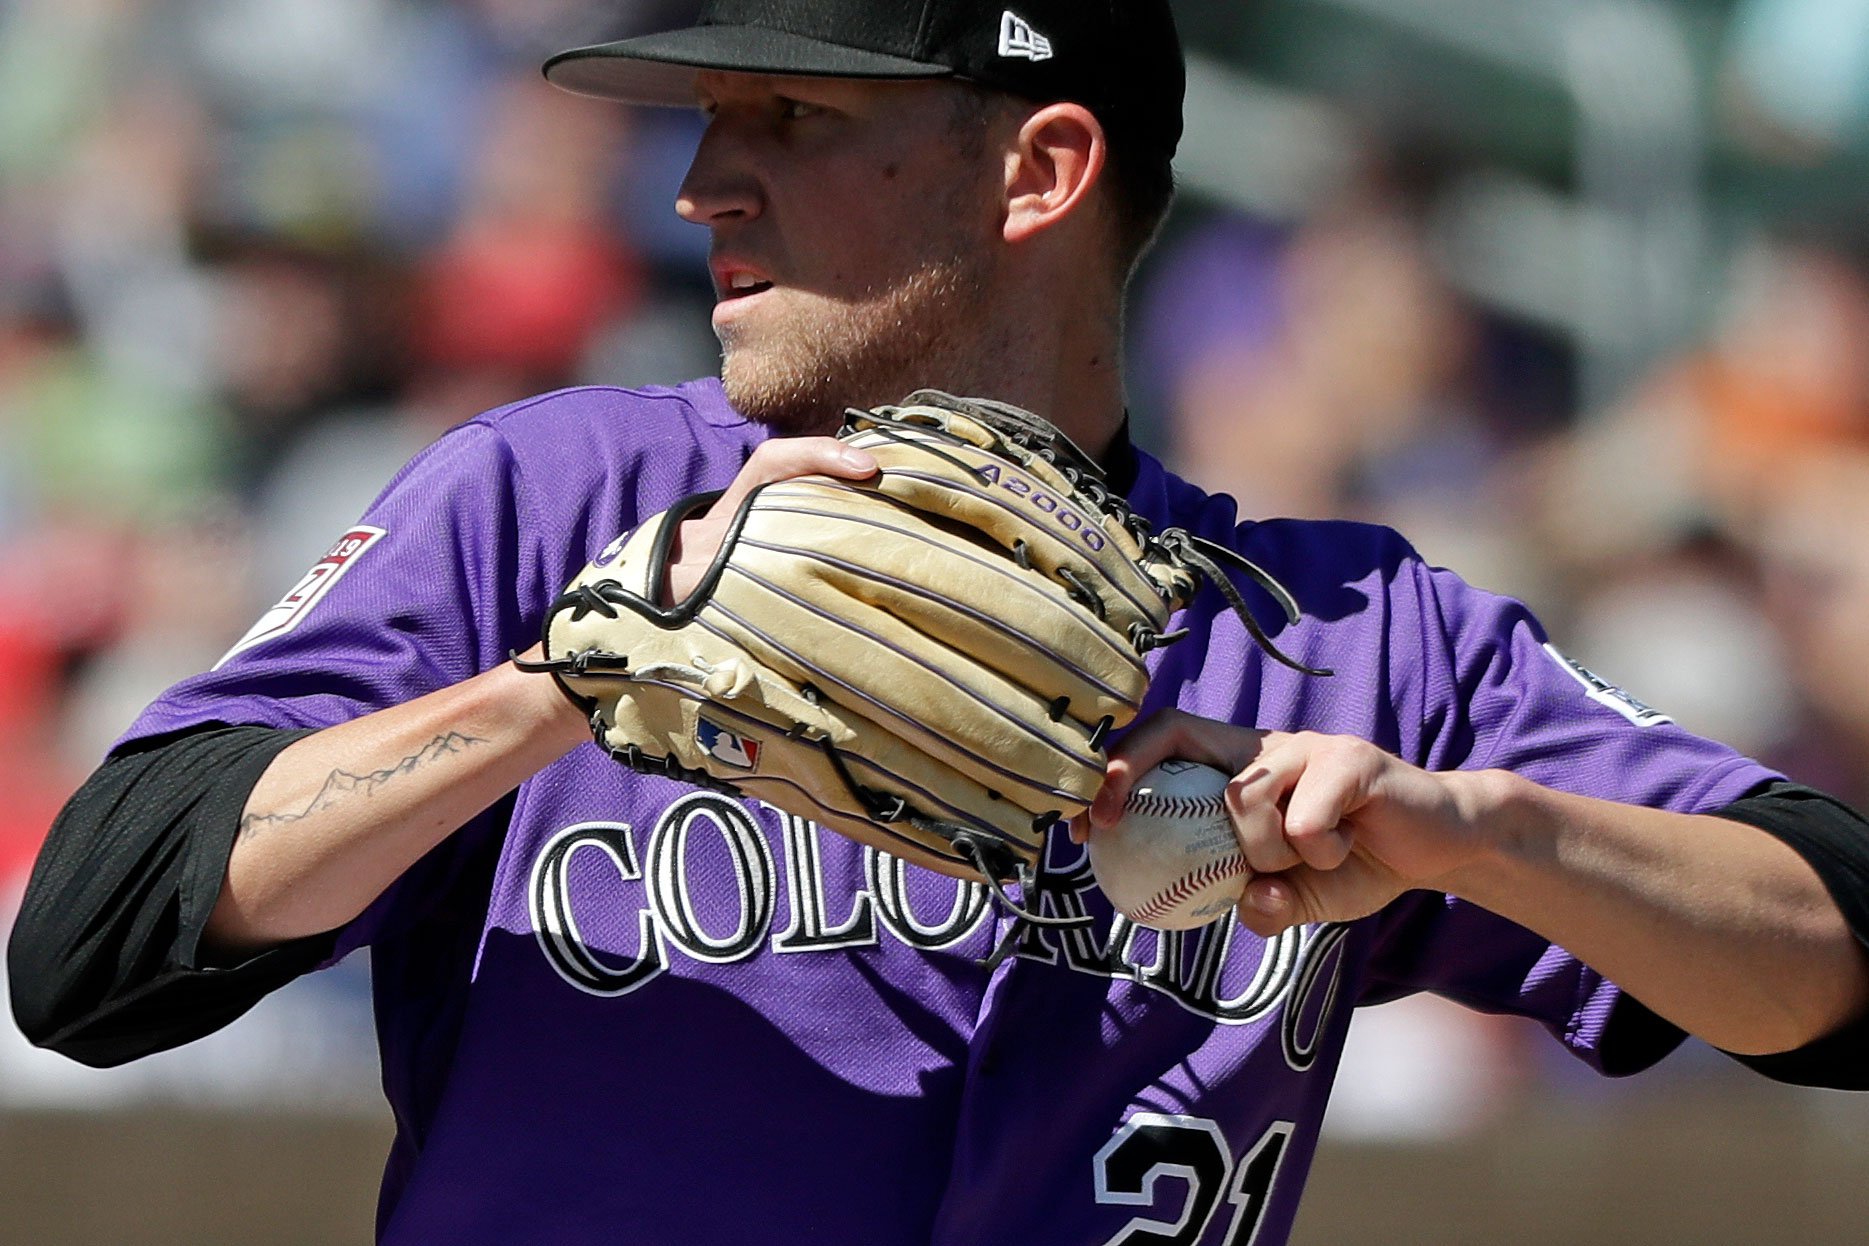 Photo: Kyle Freeland Rockies Spring Training 2019